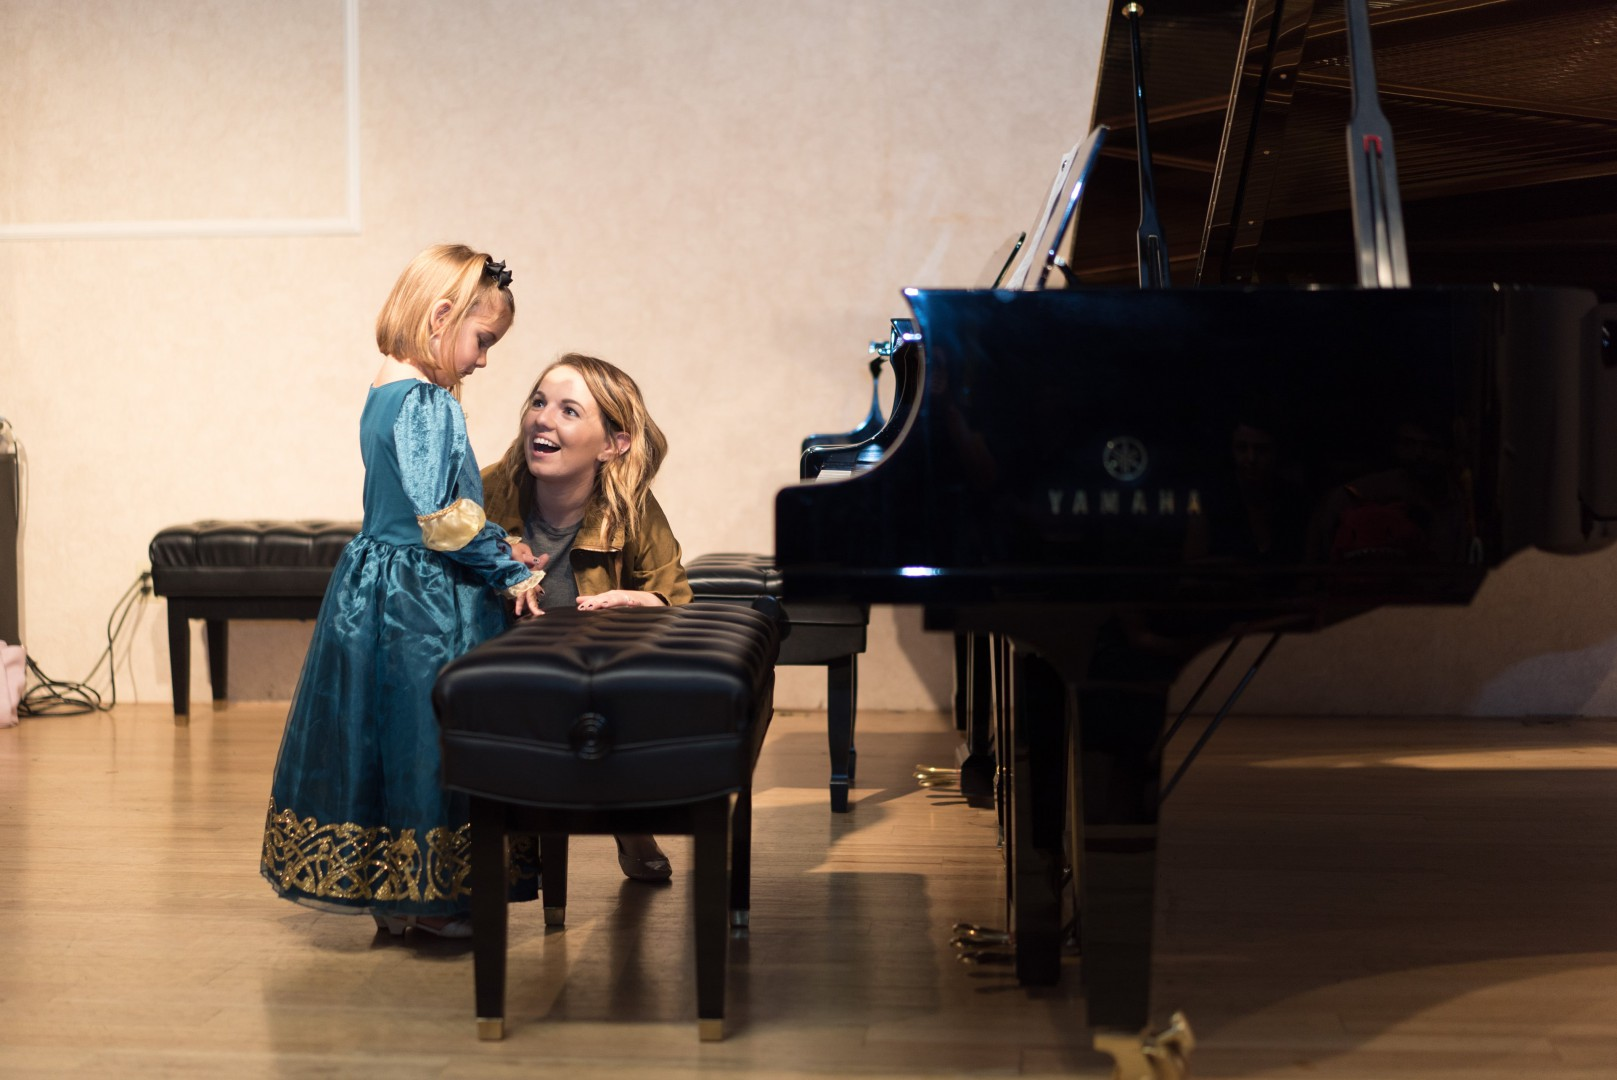 Instructor encouraging the little girl to play piano